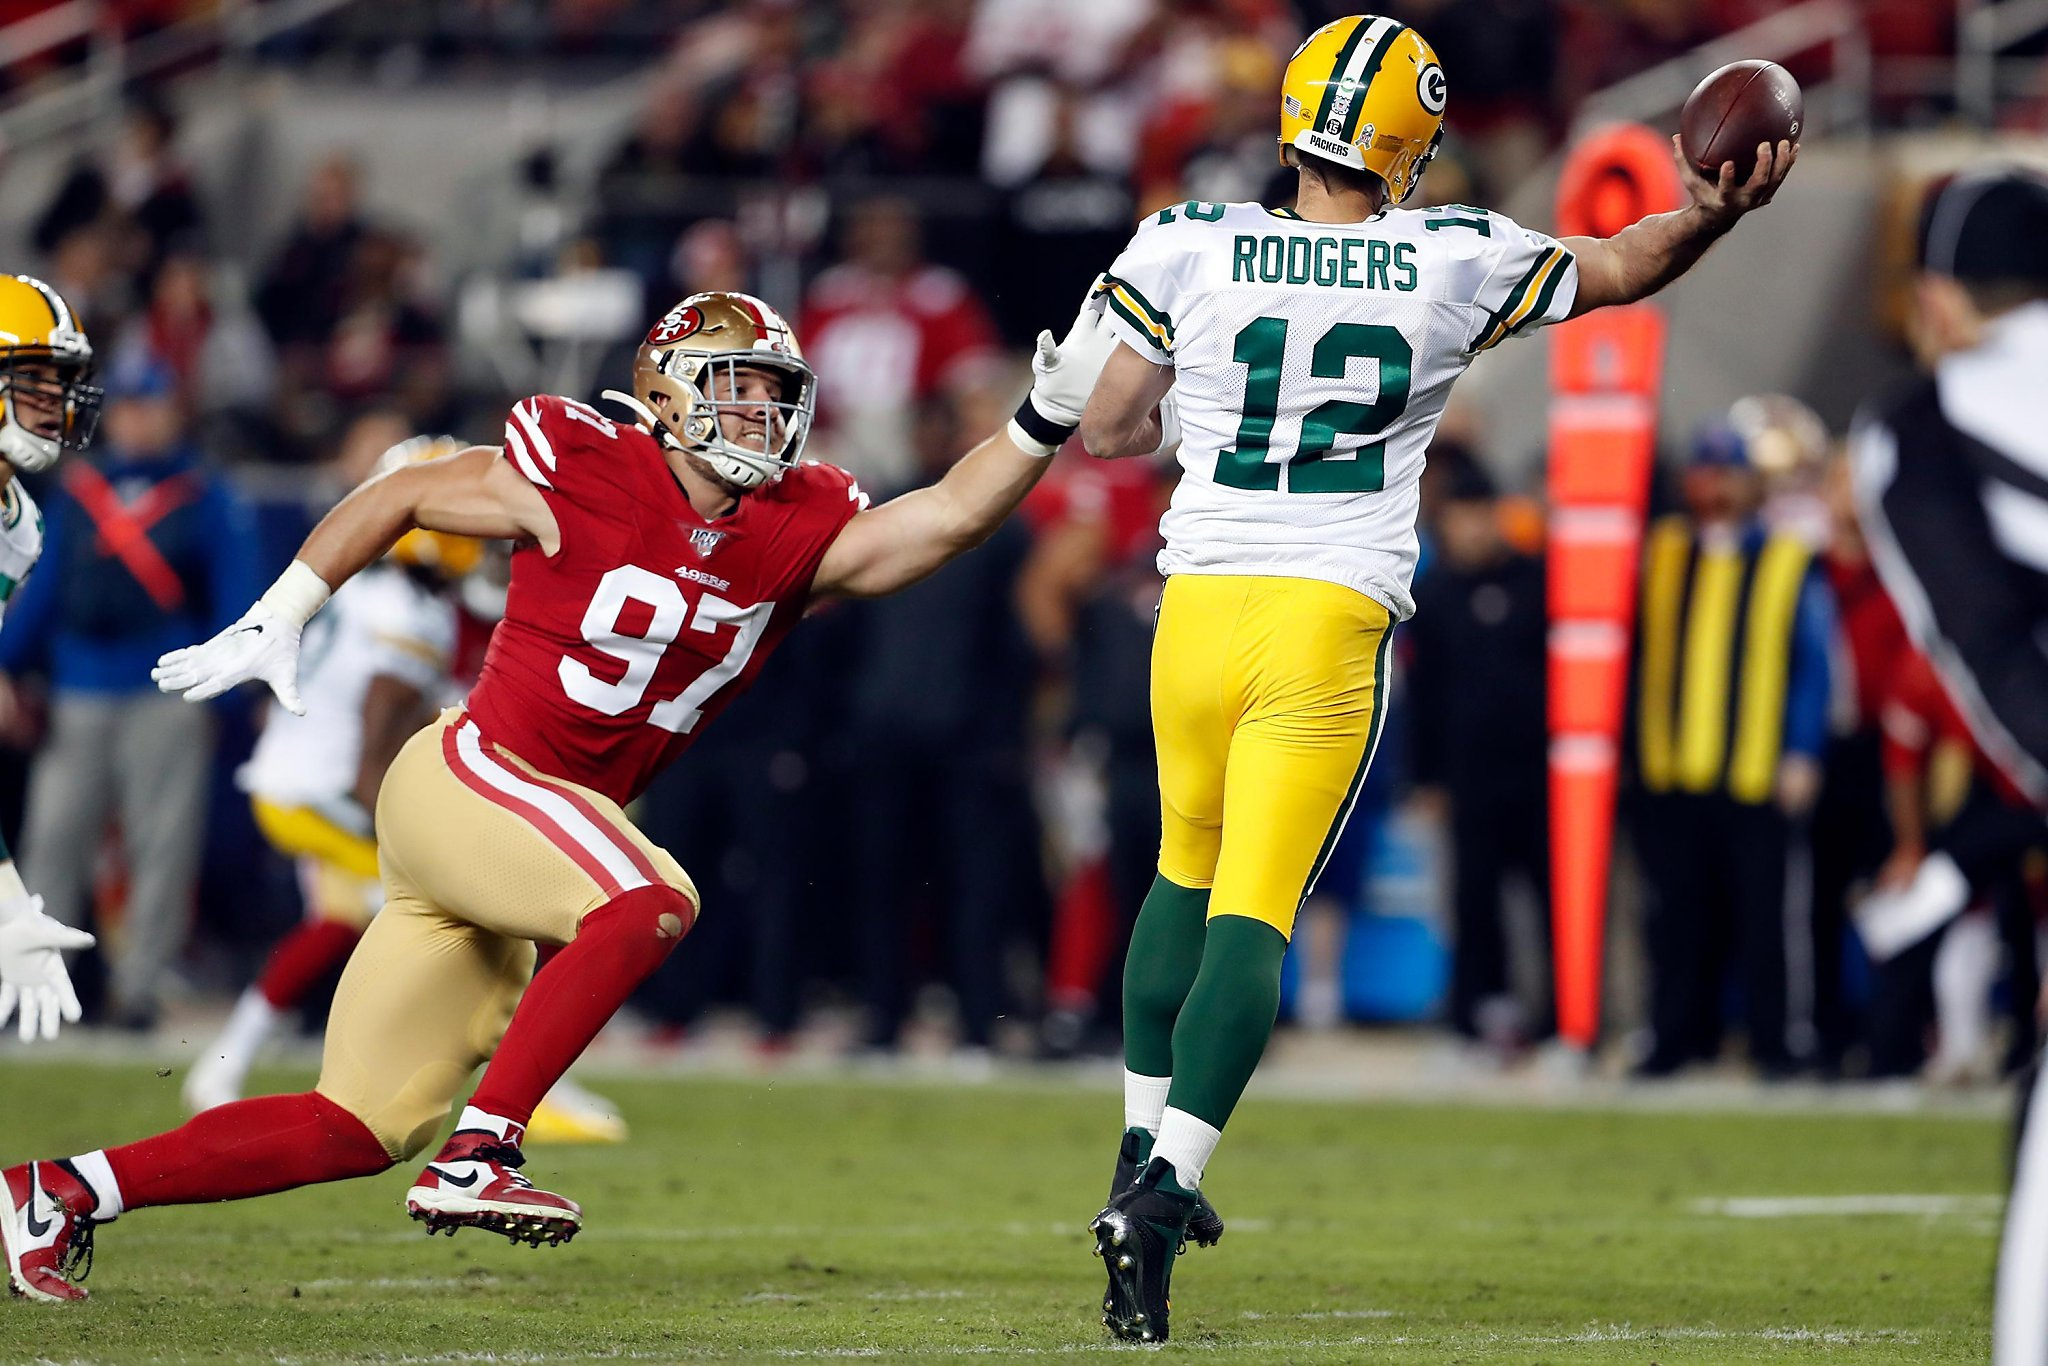 It's Packers vs. 49ers in NFC Championship Game